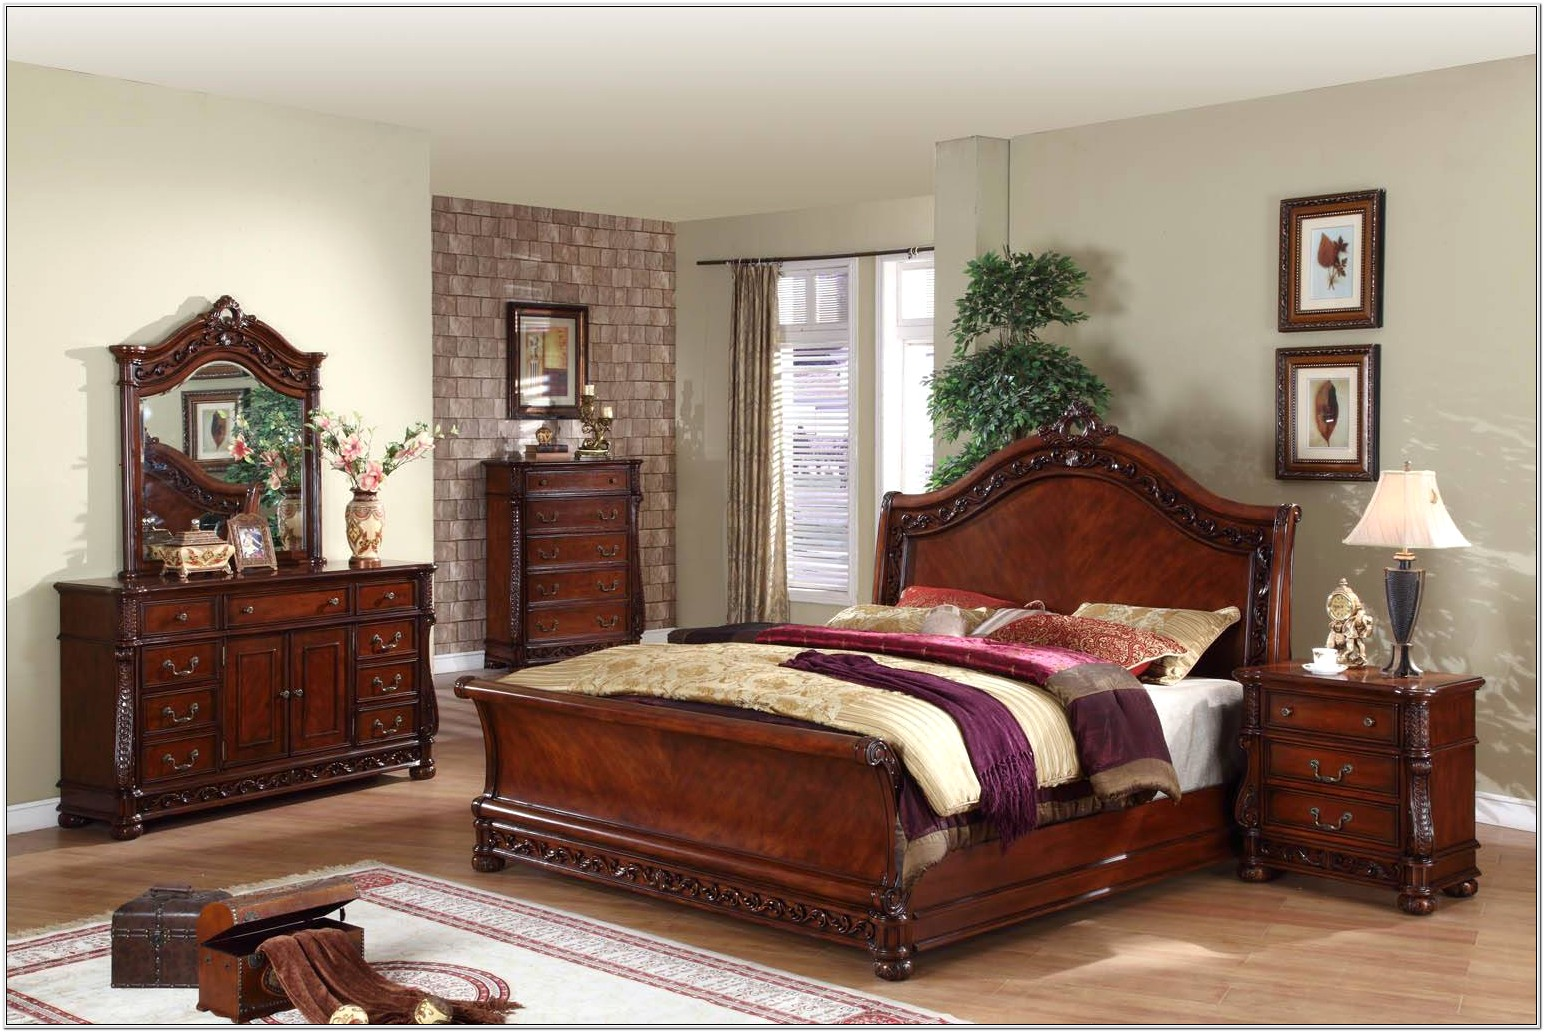 Decorate Room With Old Maple Bedroom Suite